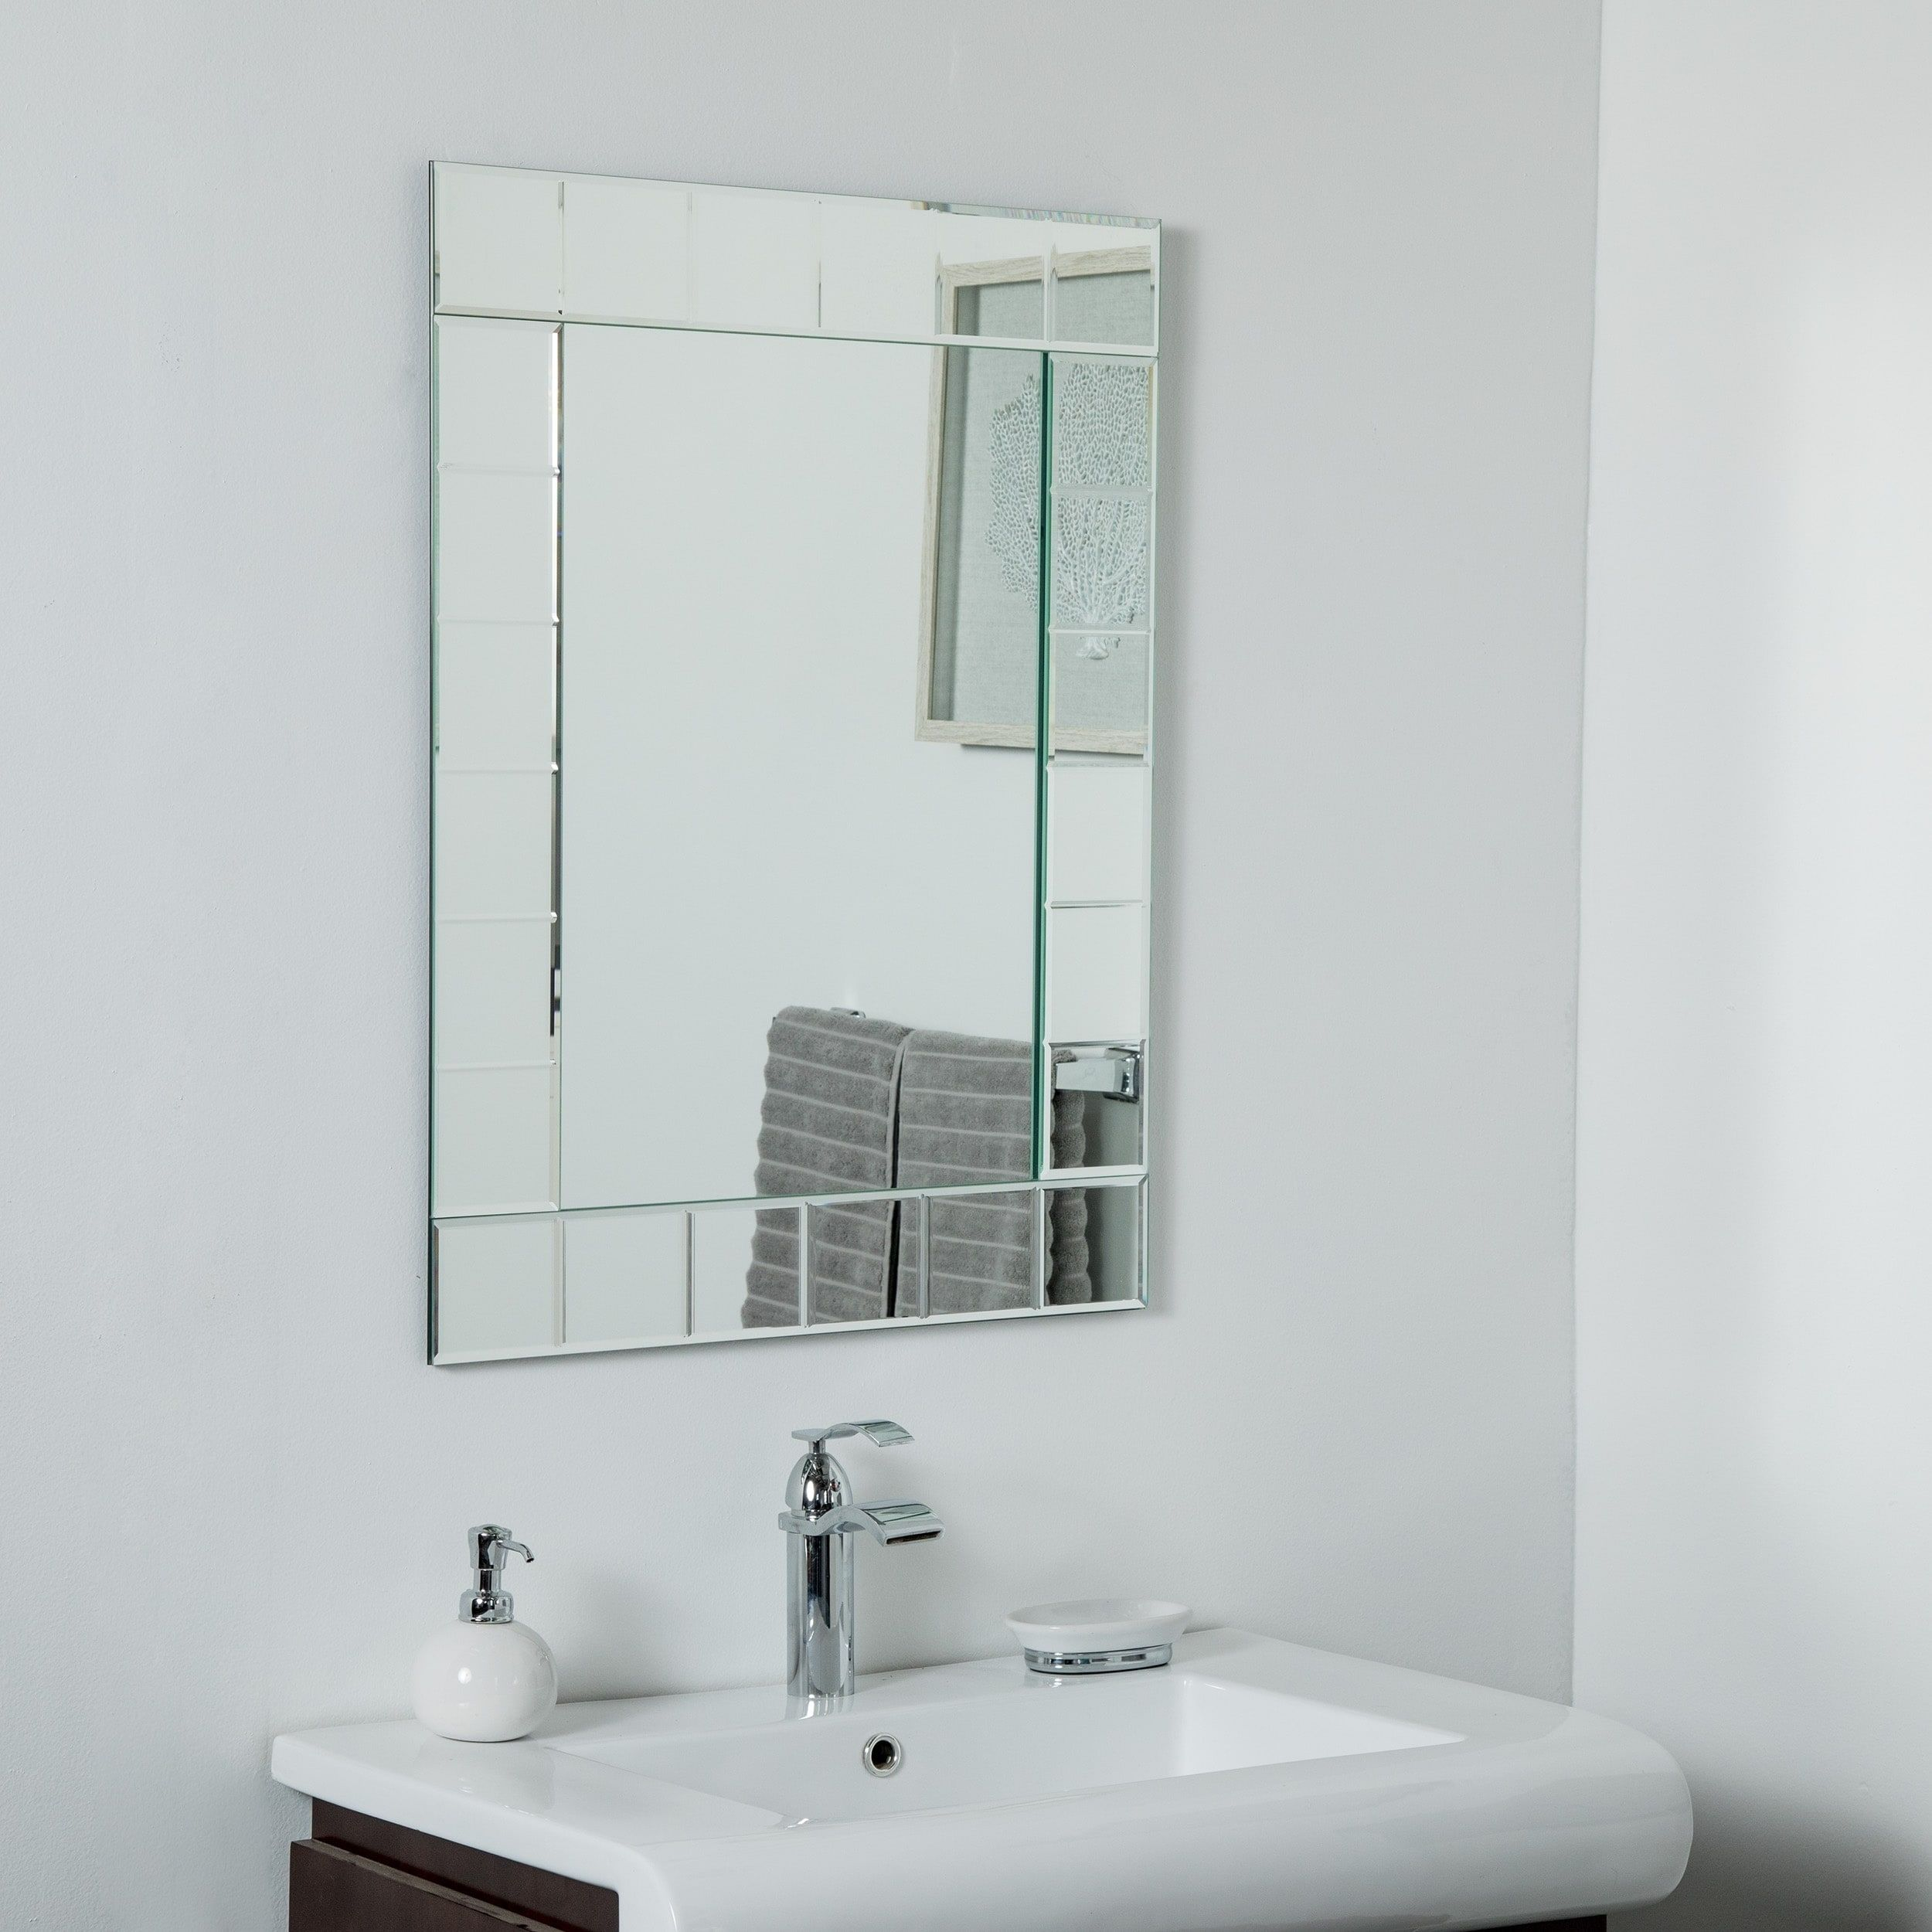 Lalo Large Frameless Mirror 31 5 X 23 6in Wall Mirror Silver